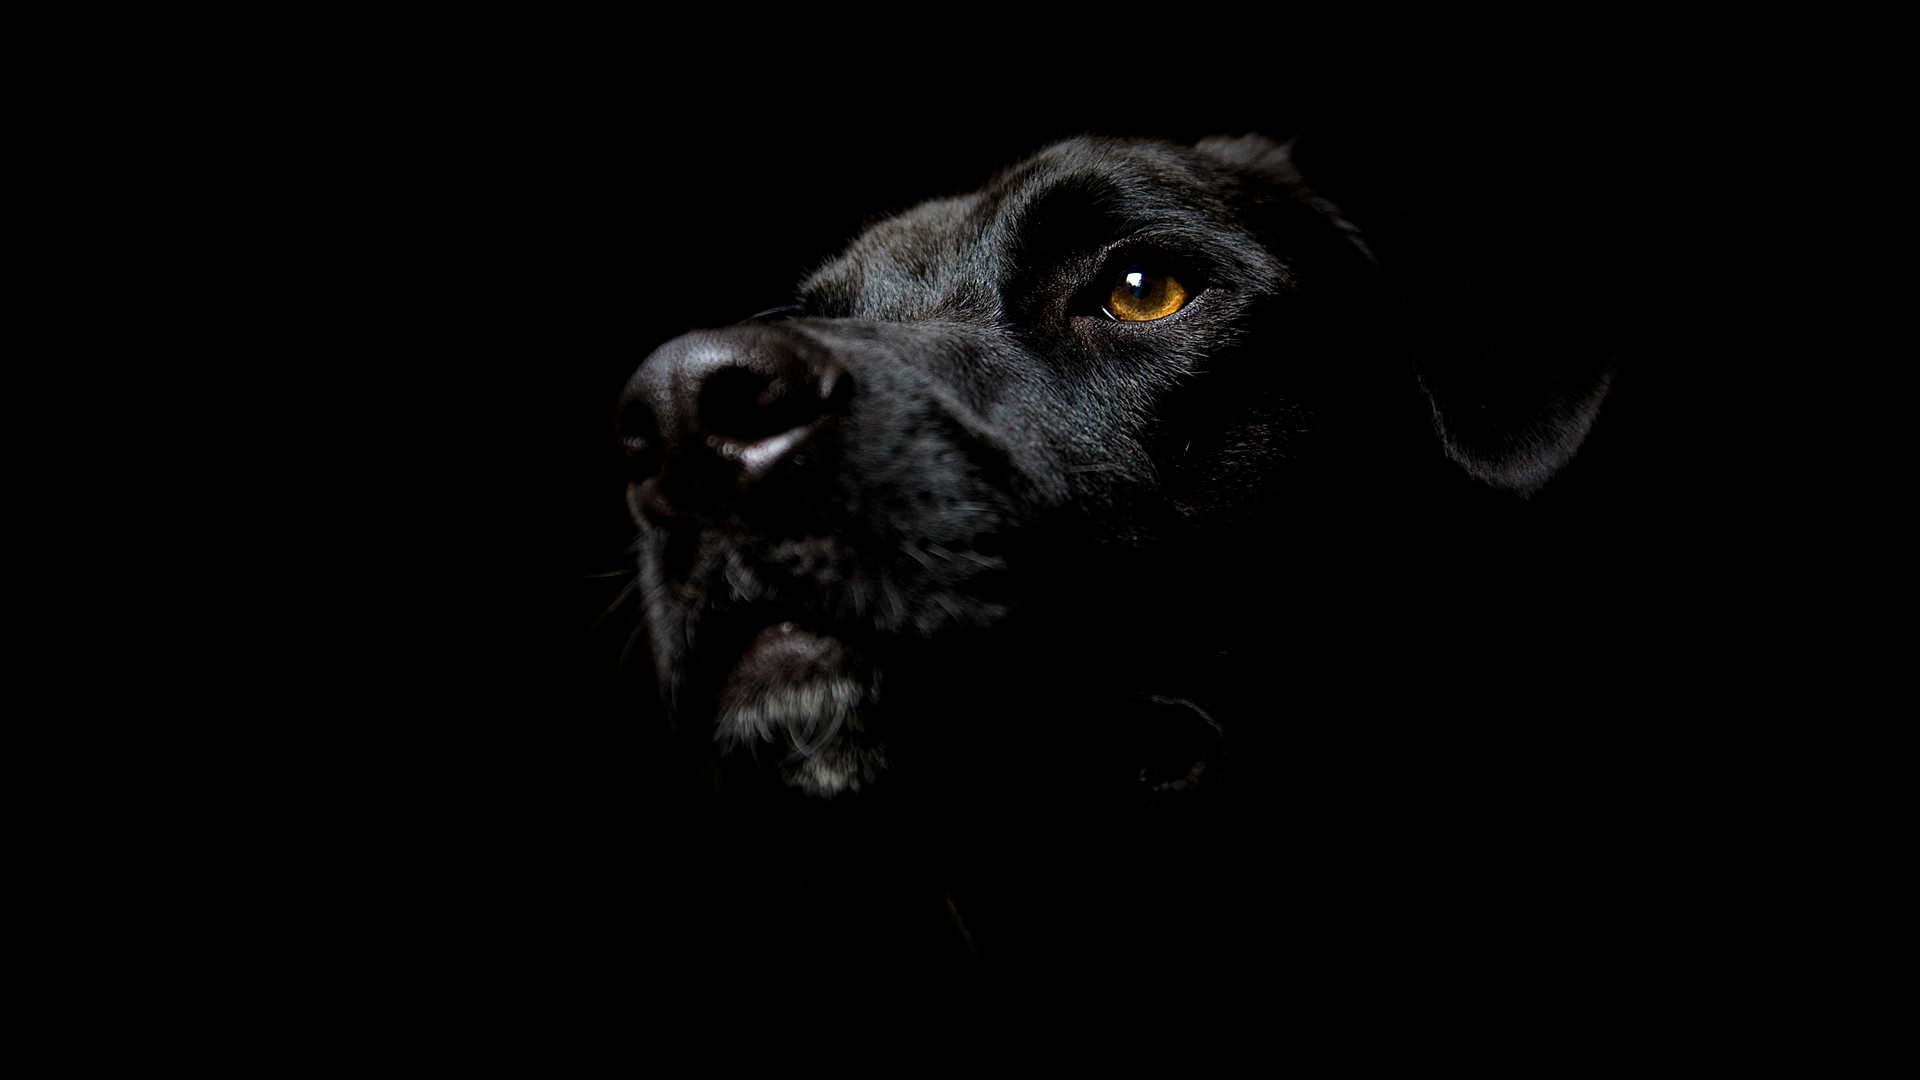 wallpaper black labrador cute backgrounds desktop dog 1920x1080